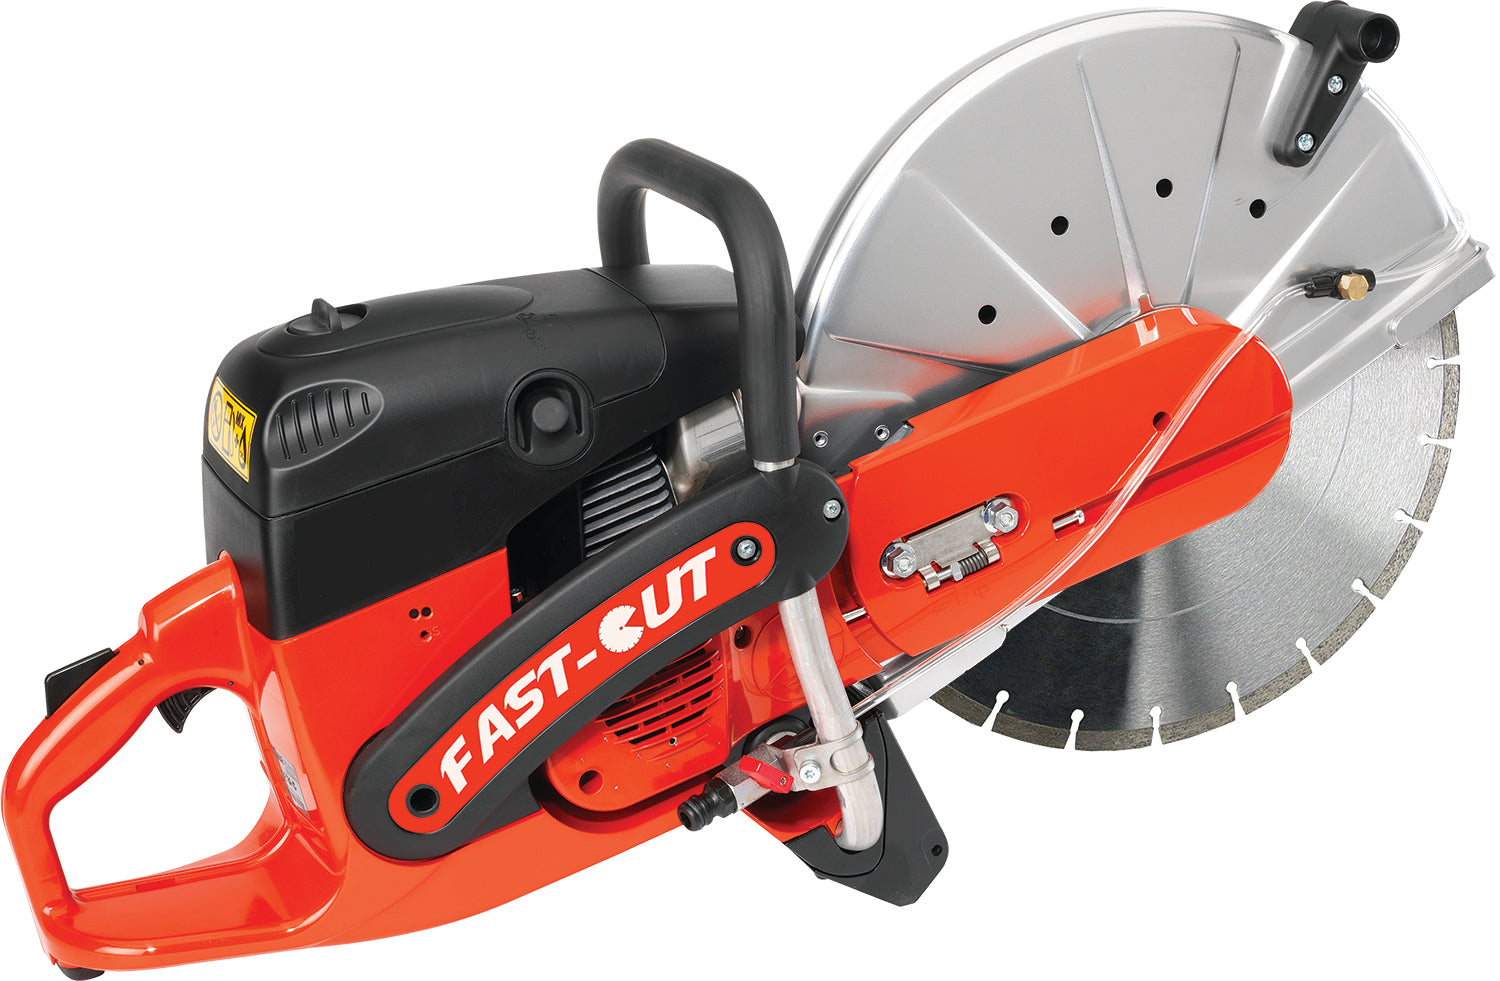 "FC8116, Fast-Cut SLR High Speed Hand Held Saw with 16"" Blade Guard"